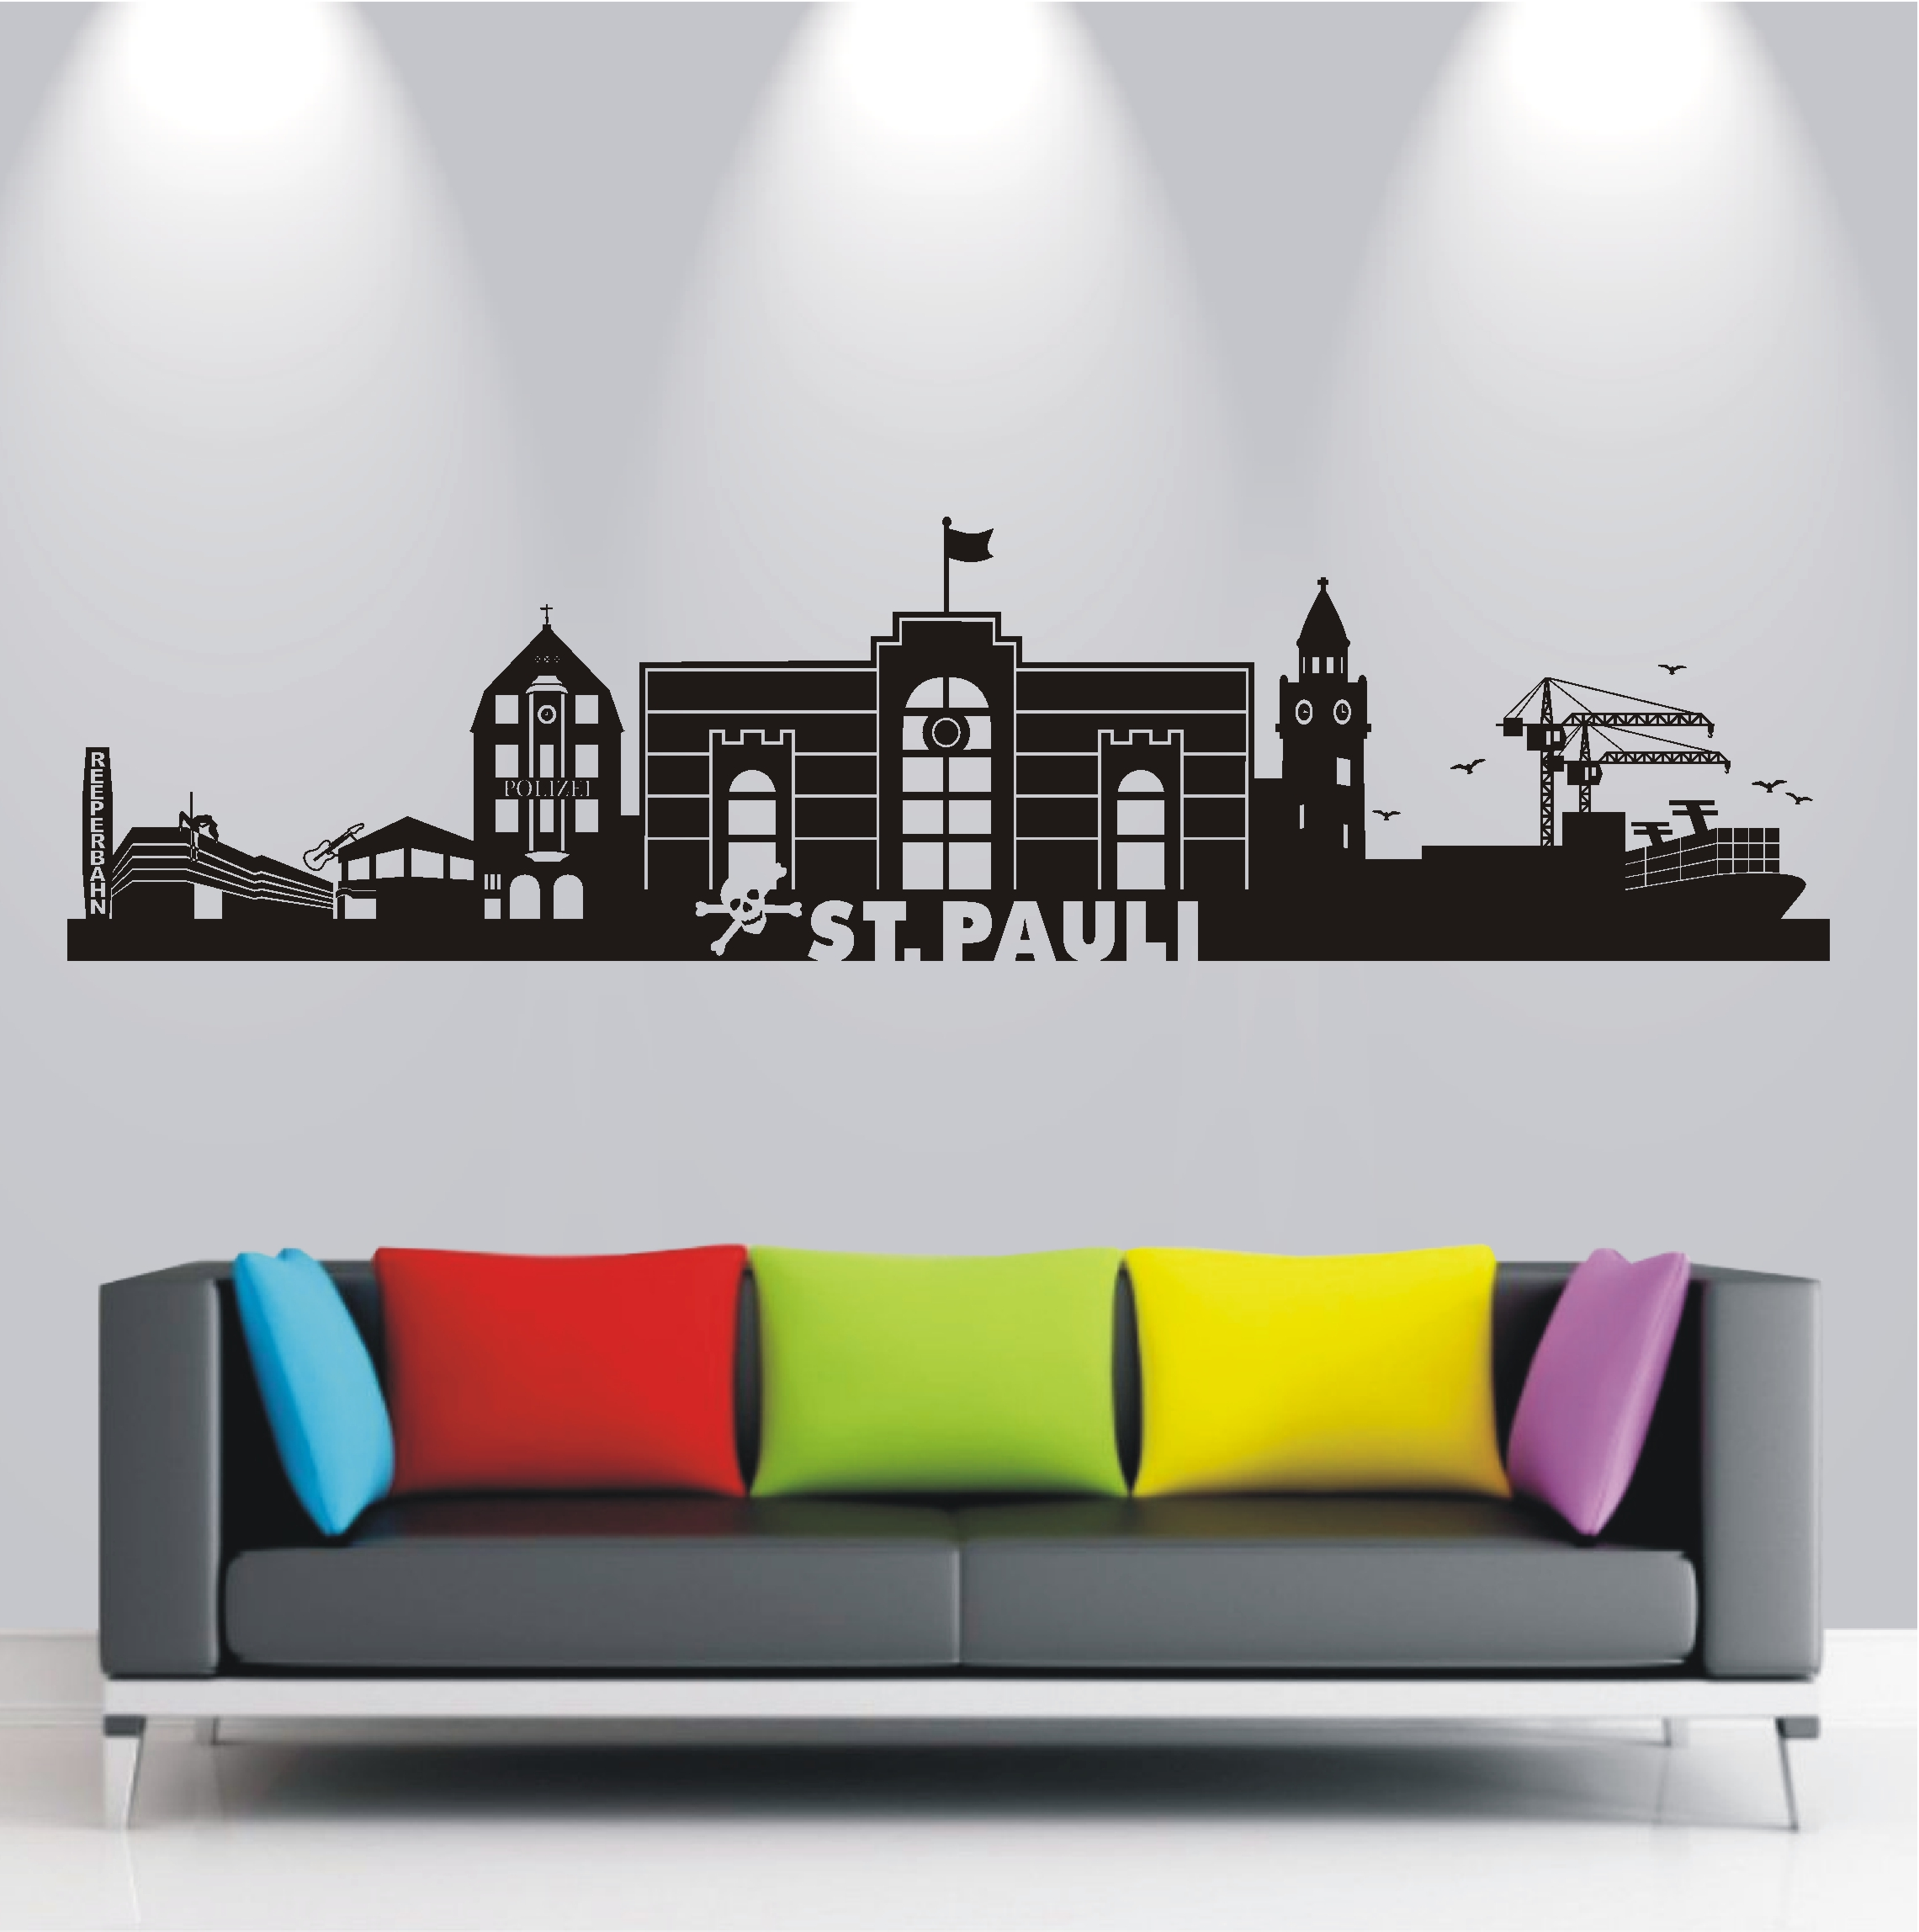 wandtattoo hamburg st pauli reuniecollegenoetsele. Black Bedroom Furniture Sets. Home Design Ideas